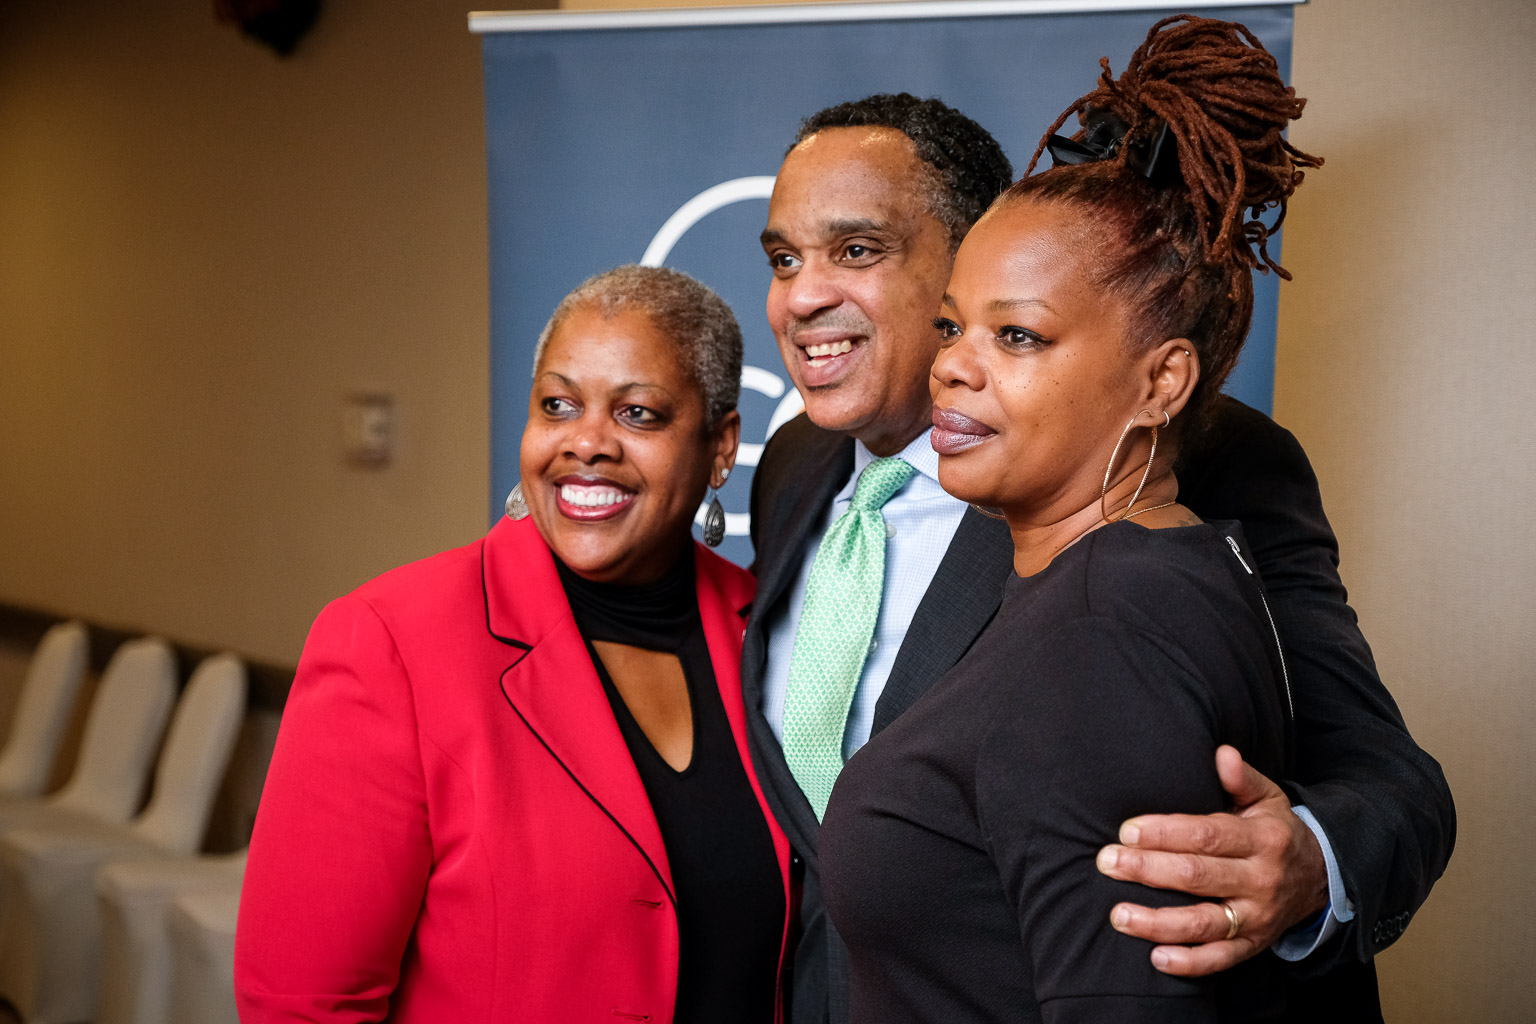 Legislative_Holiday_Reception_12-8-17-097-Lenzy-Ruffin-Event-Photography-Washington-DC-Fuji-X-T2.jpg